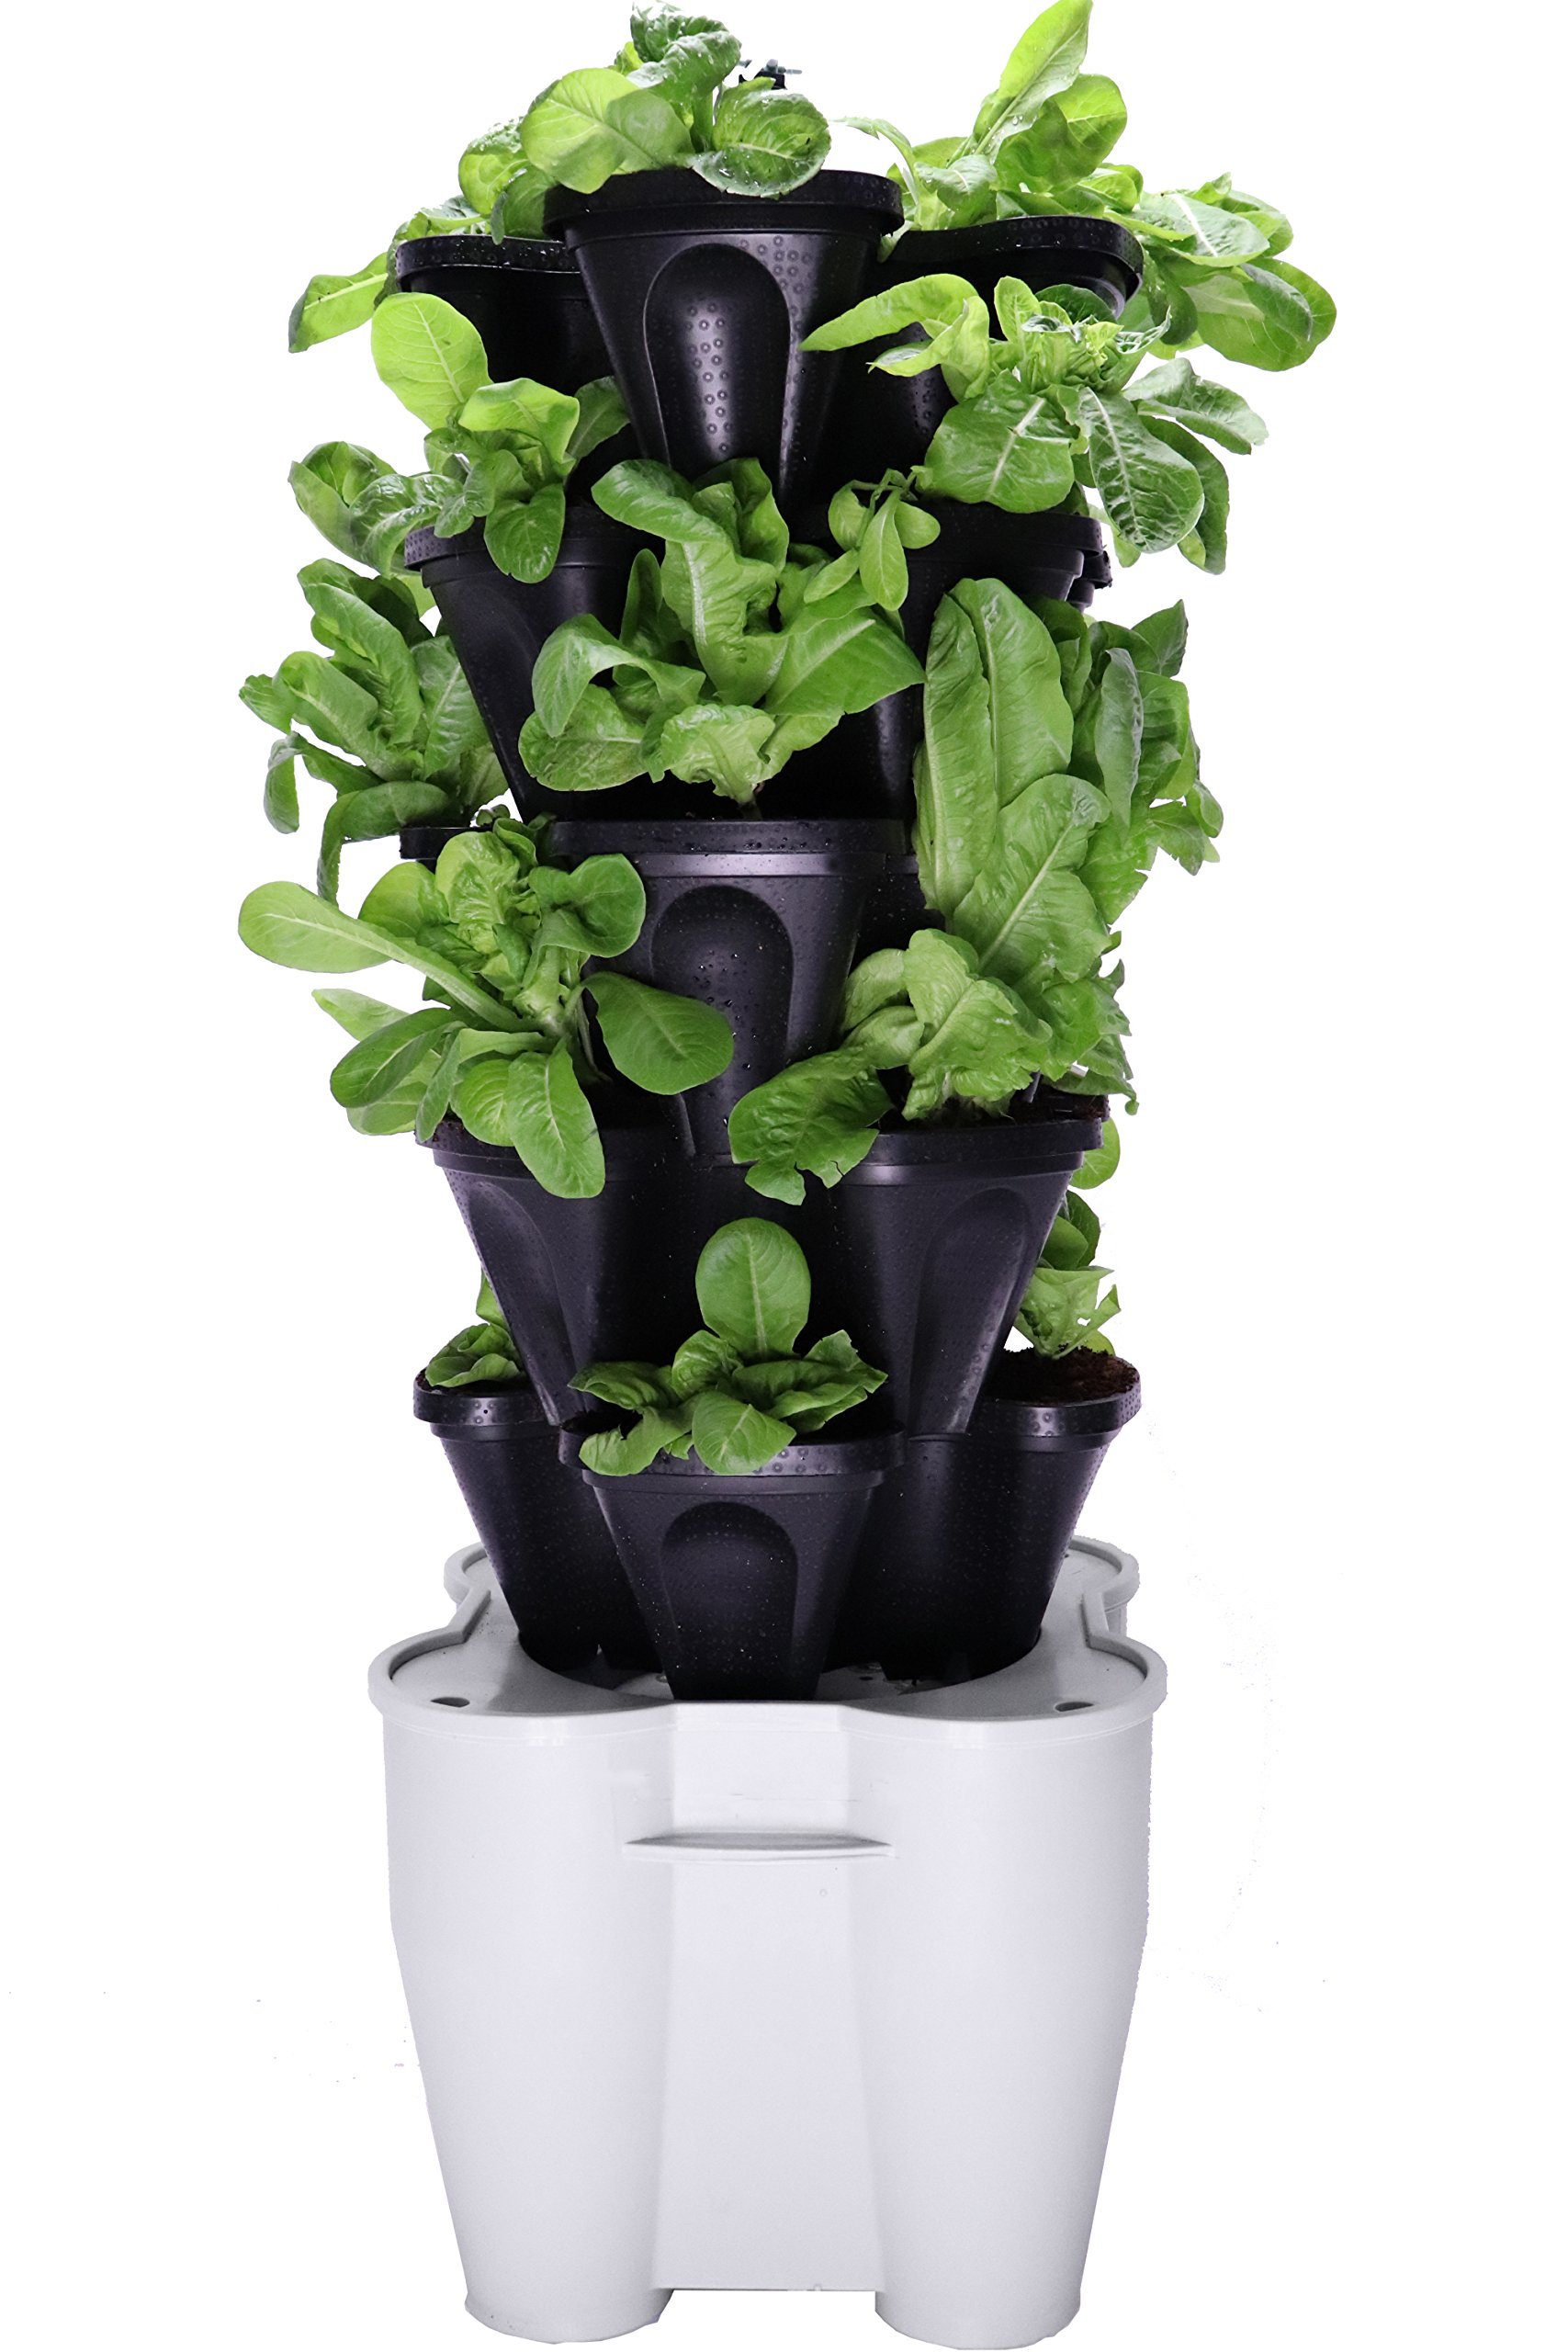 Smart Farm - Automatic Self Watering Garden - Grow Fresh Healthy Food Virtually Anywhere Year Round - Soil or Hydroponic Vertical Tower Gardening System By Mr Stacky (Standard Kit, Black) by Mr. Stacky